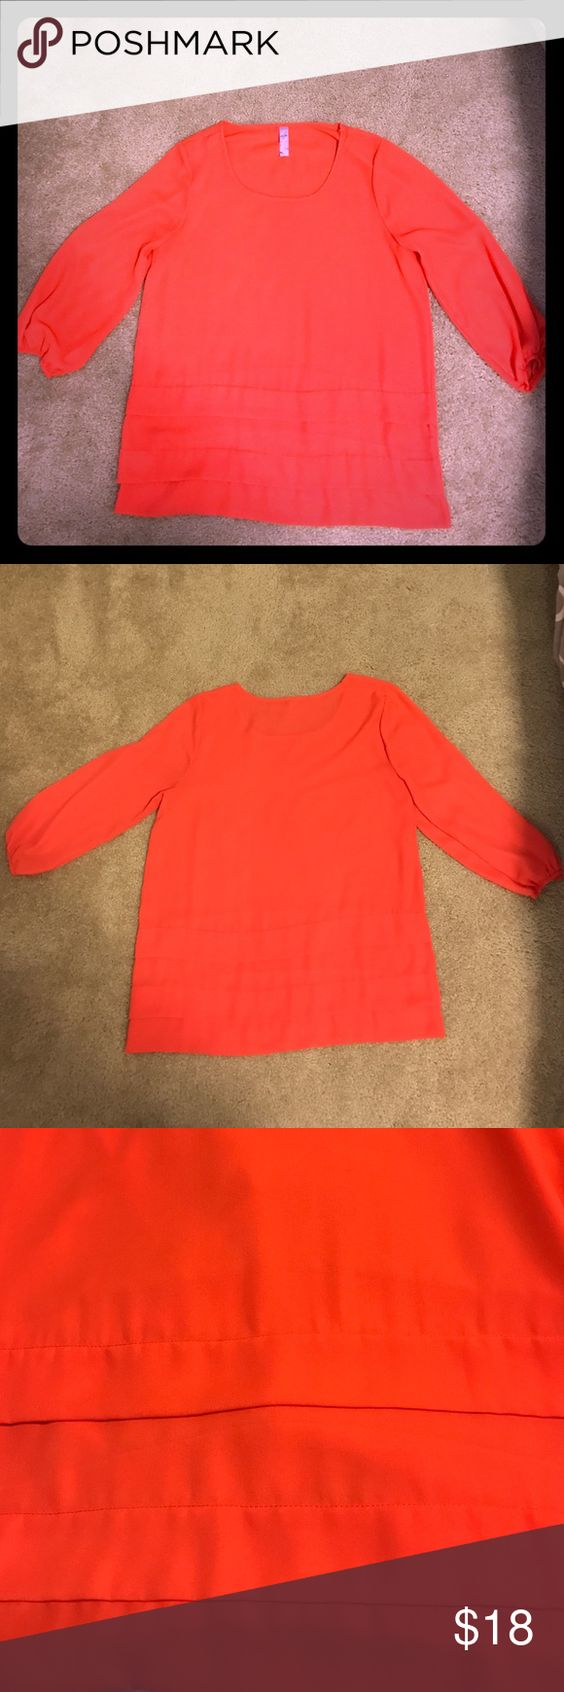 Pink 3/4 length sleeve blouse 100% polyester. Tiered detail at hem. Elastic sleeve cuffs. Great condition! Francesca's Collections Tops Blouses